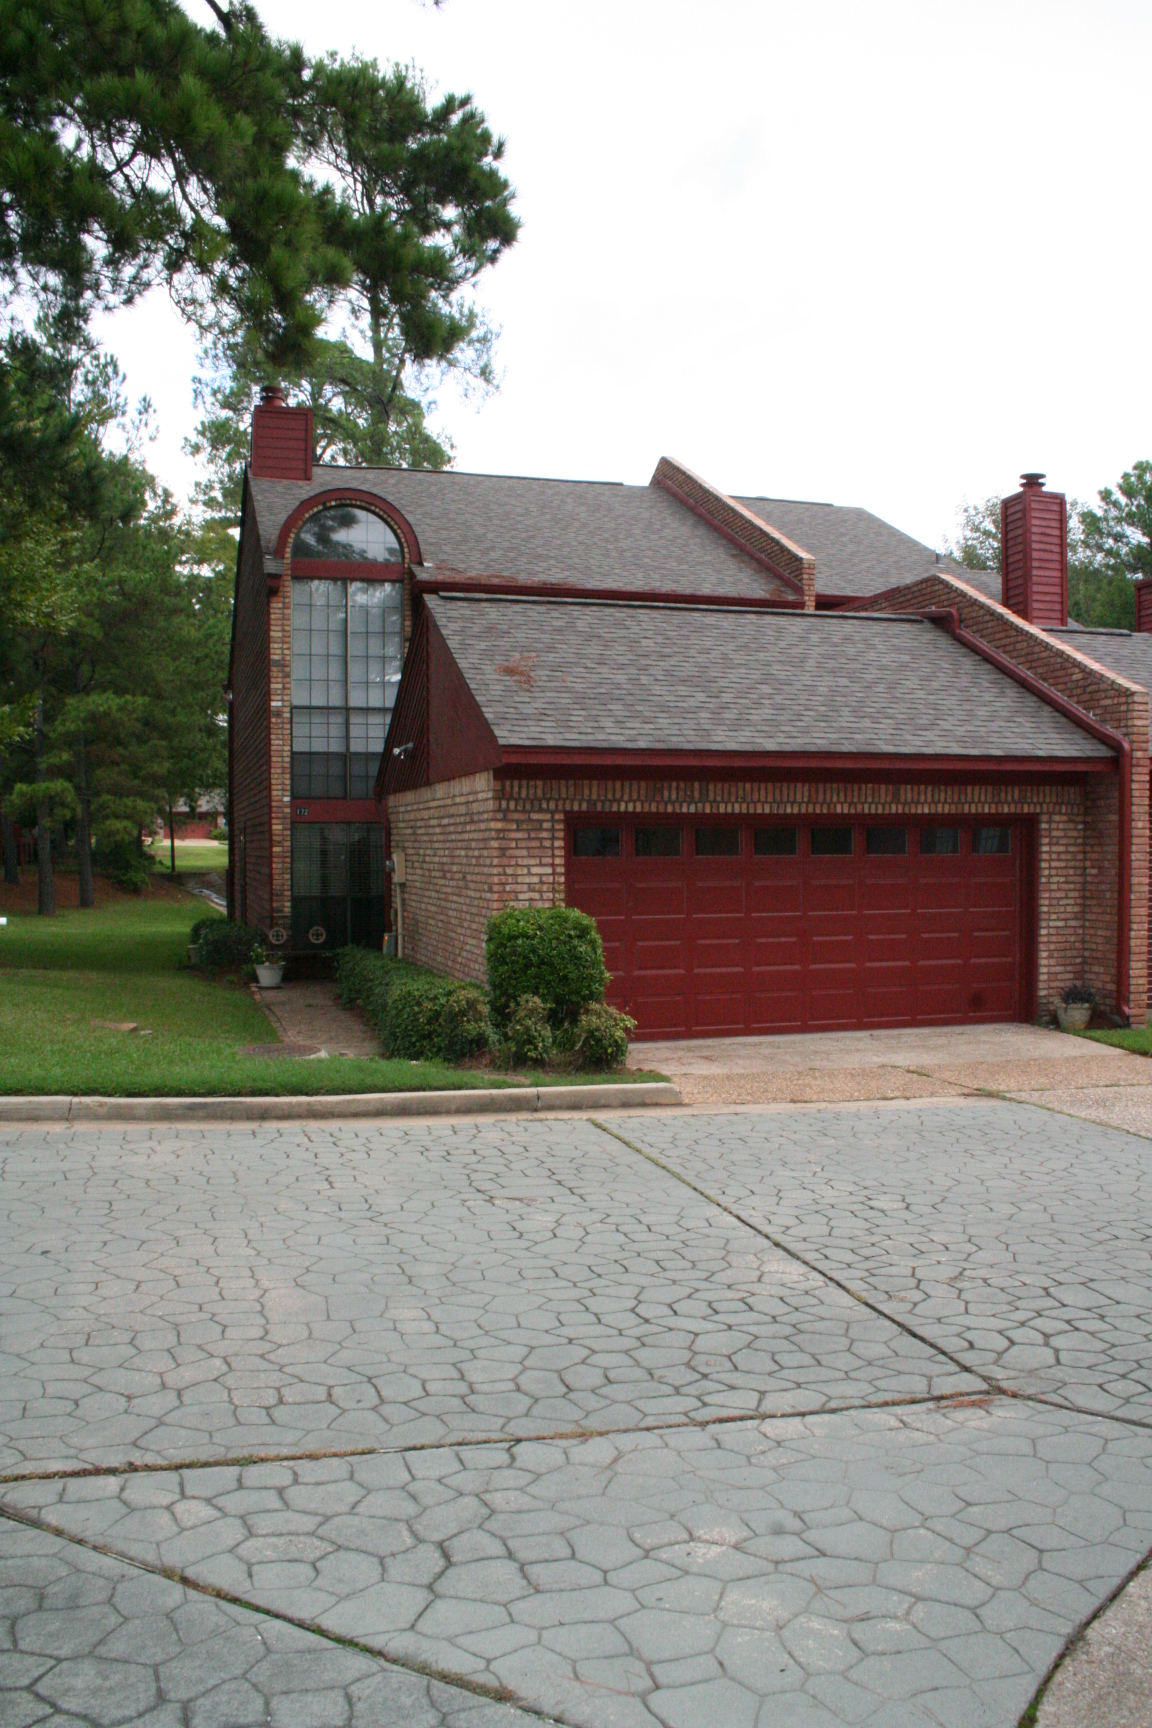 Fabulous Townhouse For Sale In Shreveport 33 With Over 1740 Sf